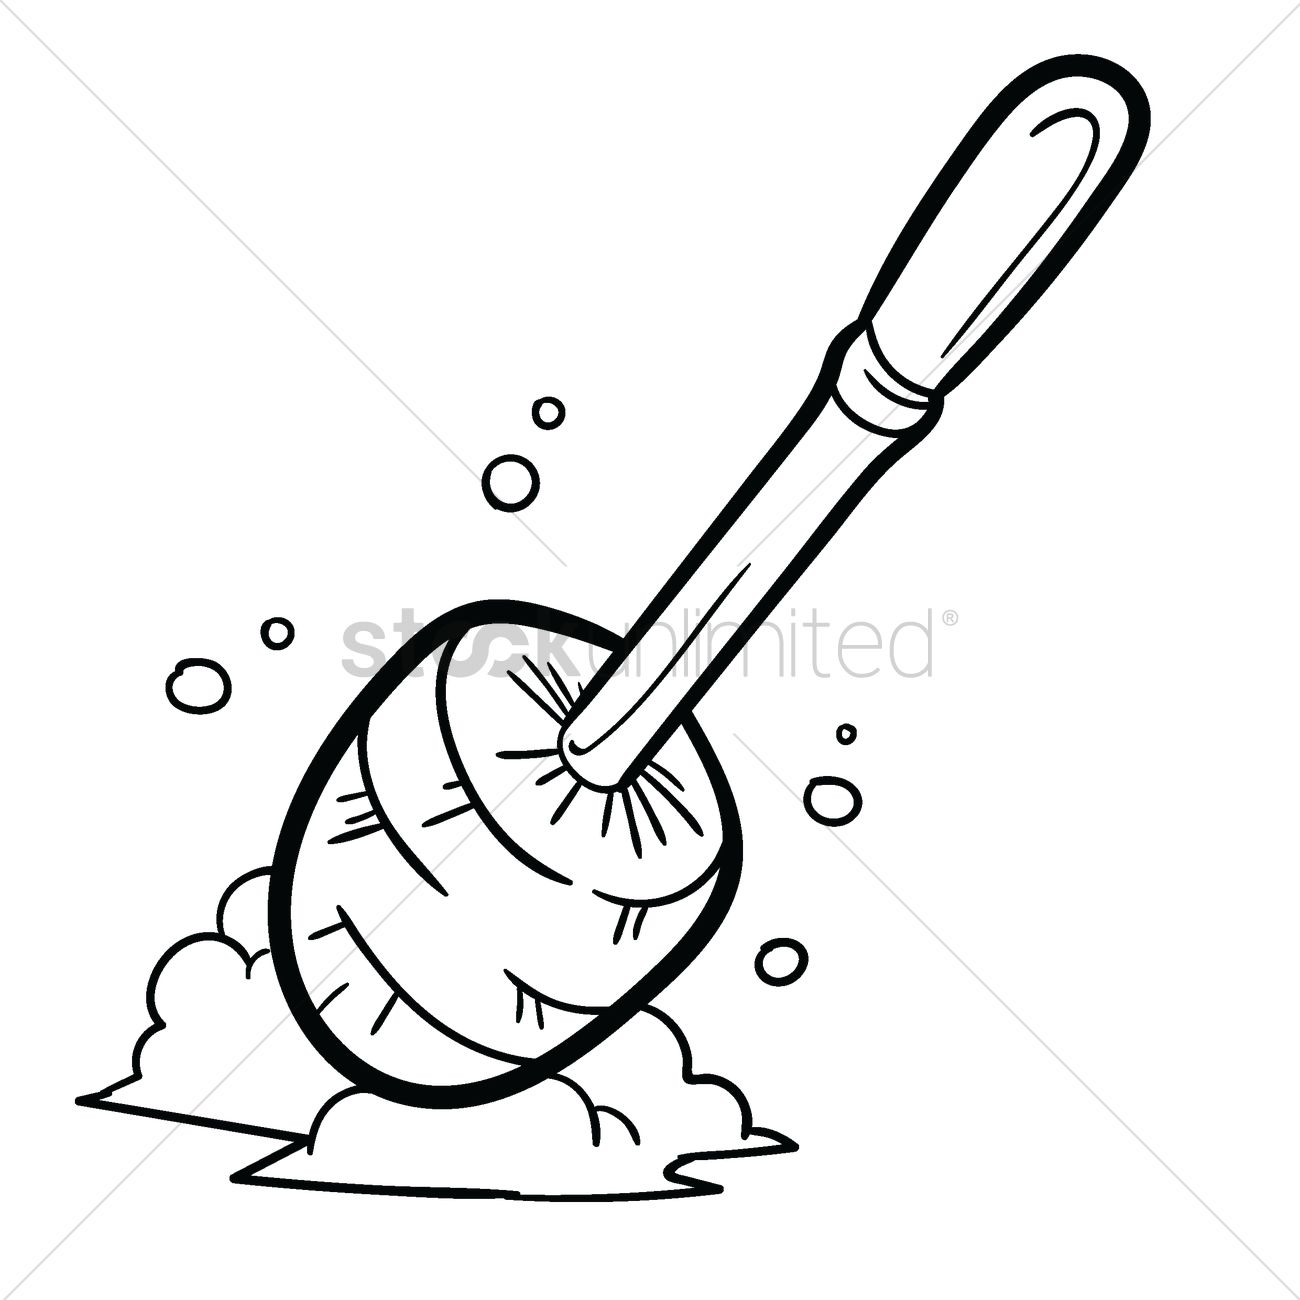 Toilet Brush Vector Image